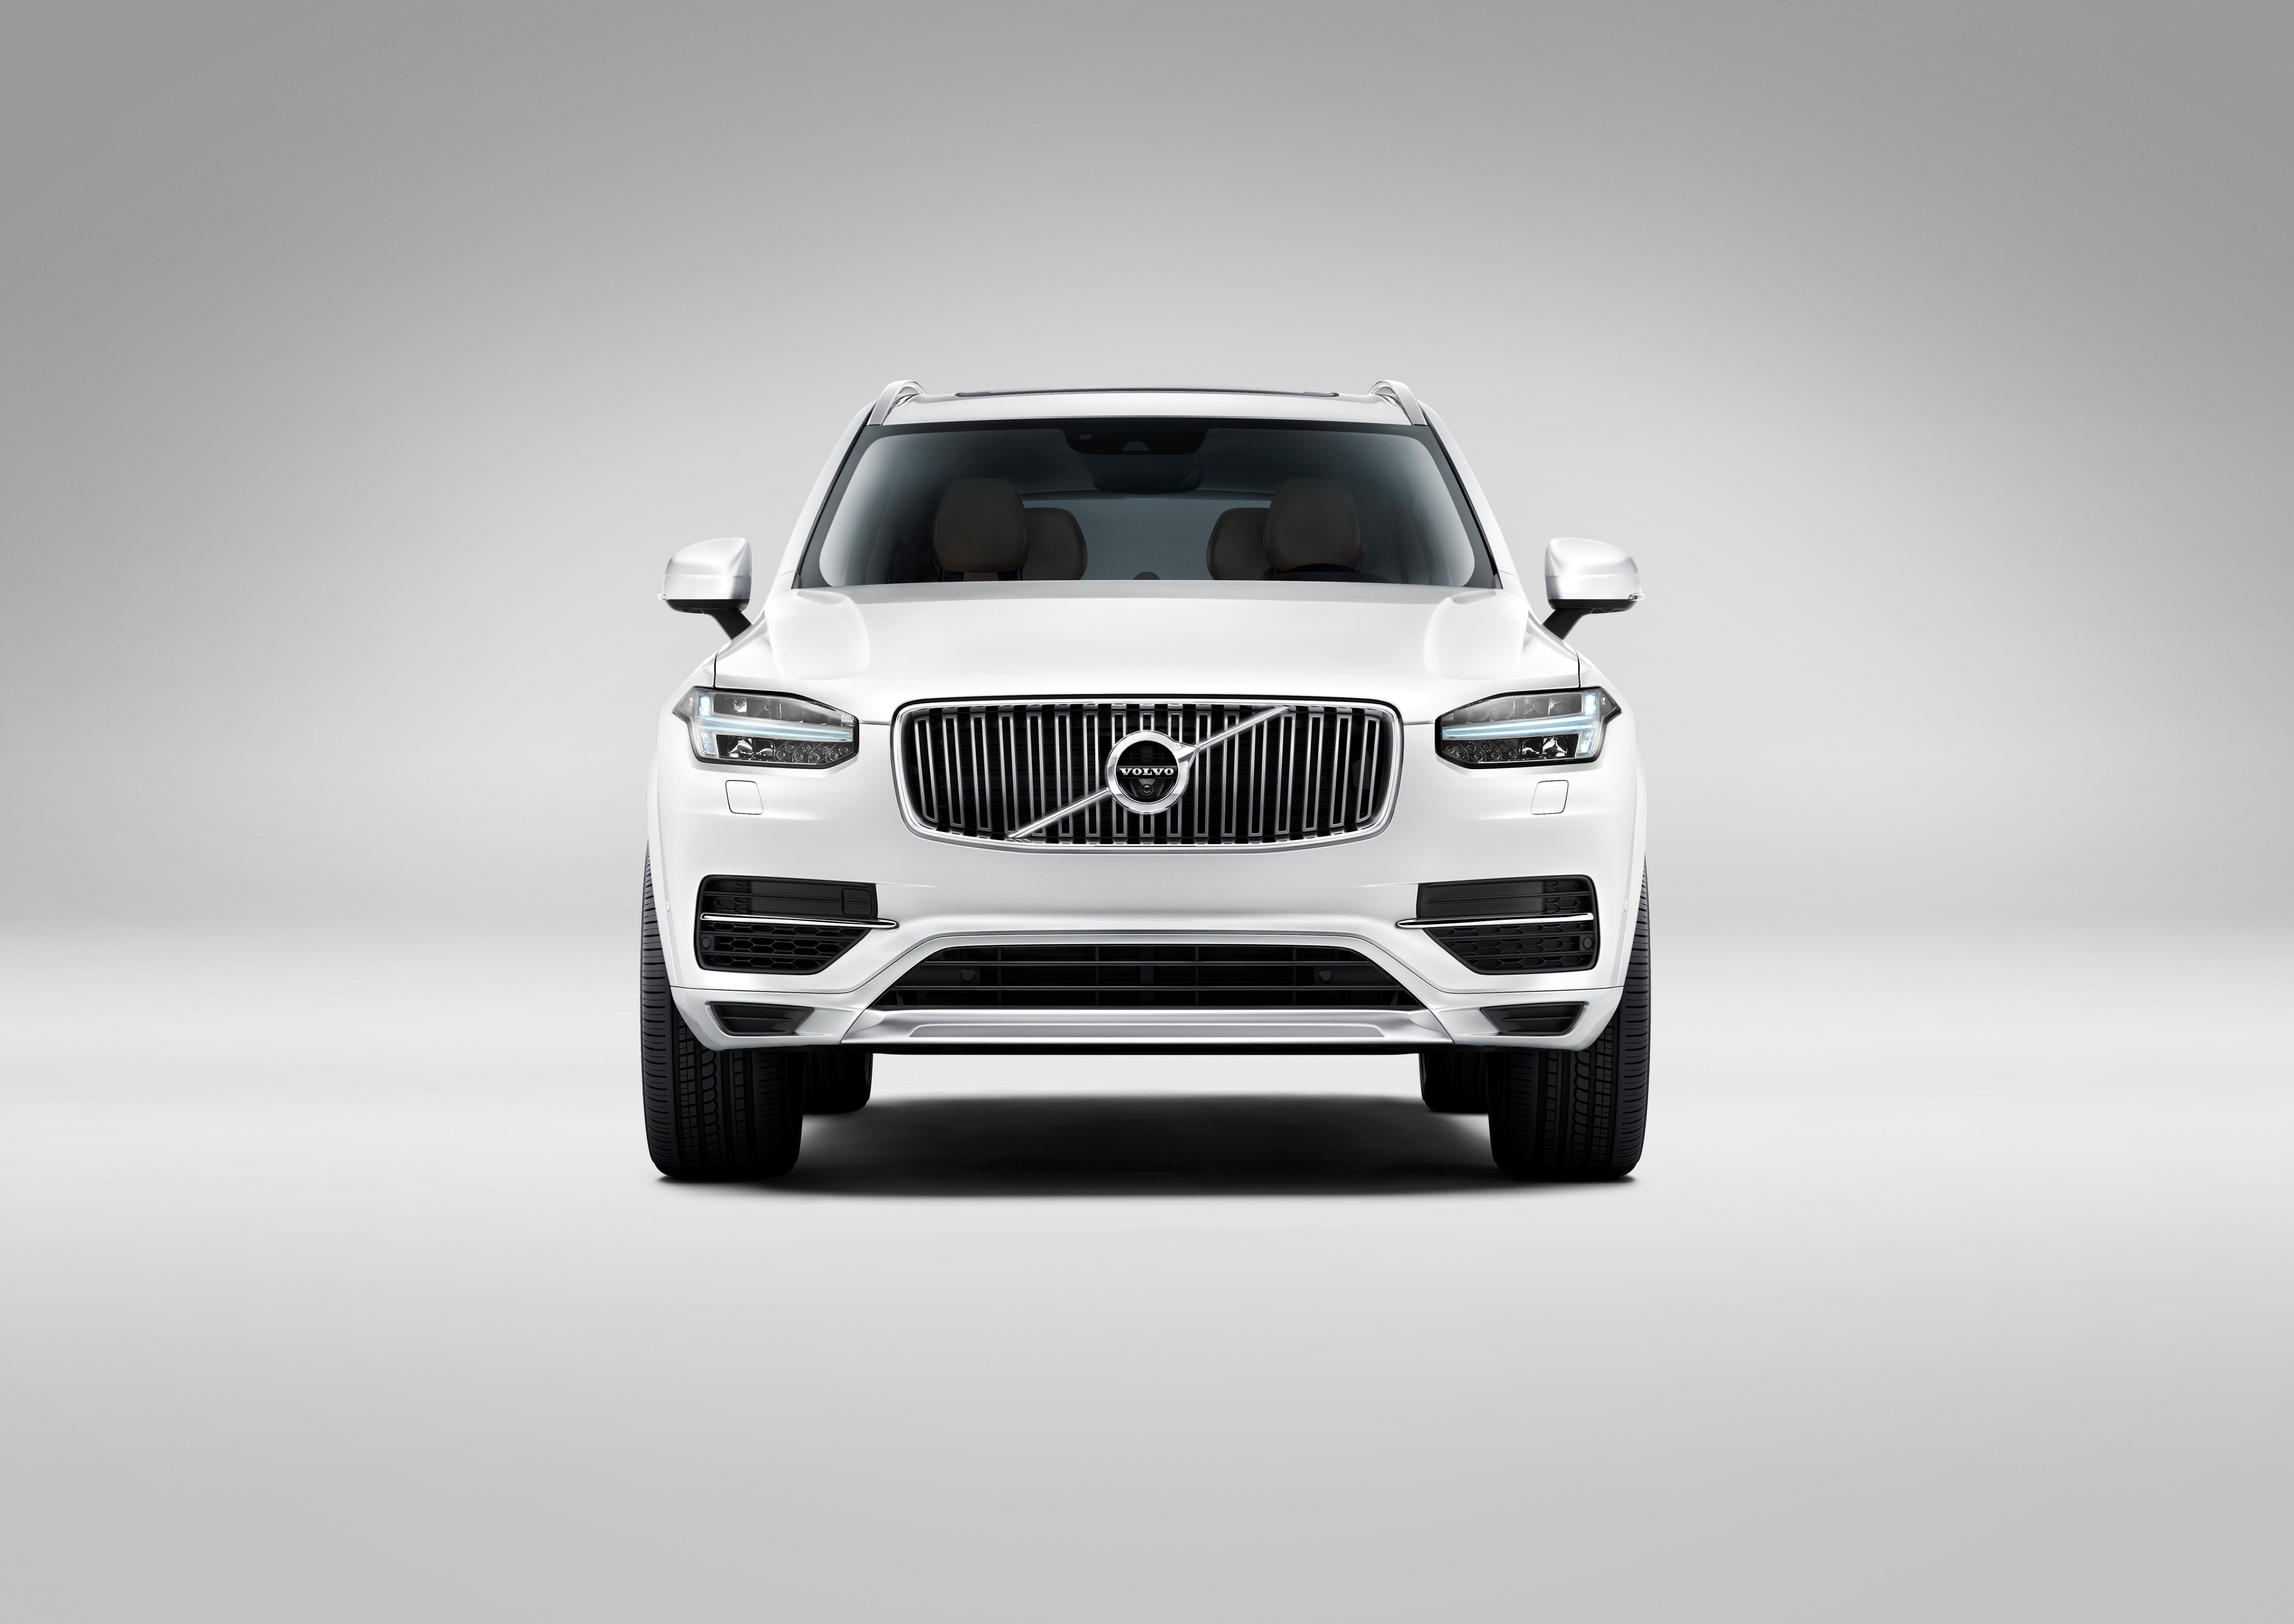 2016 Volvo XC90 News and Information | conceptcarz.com